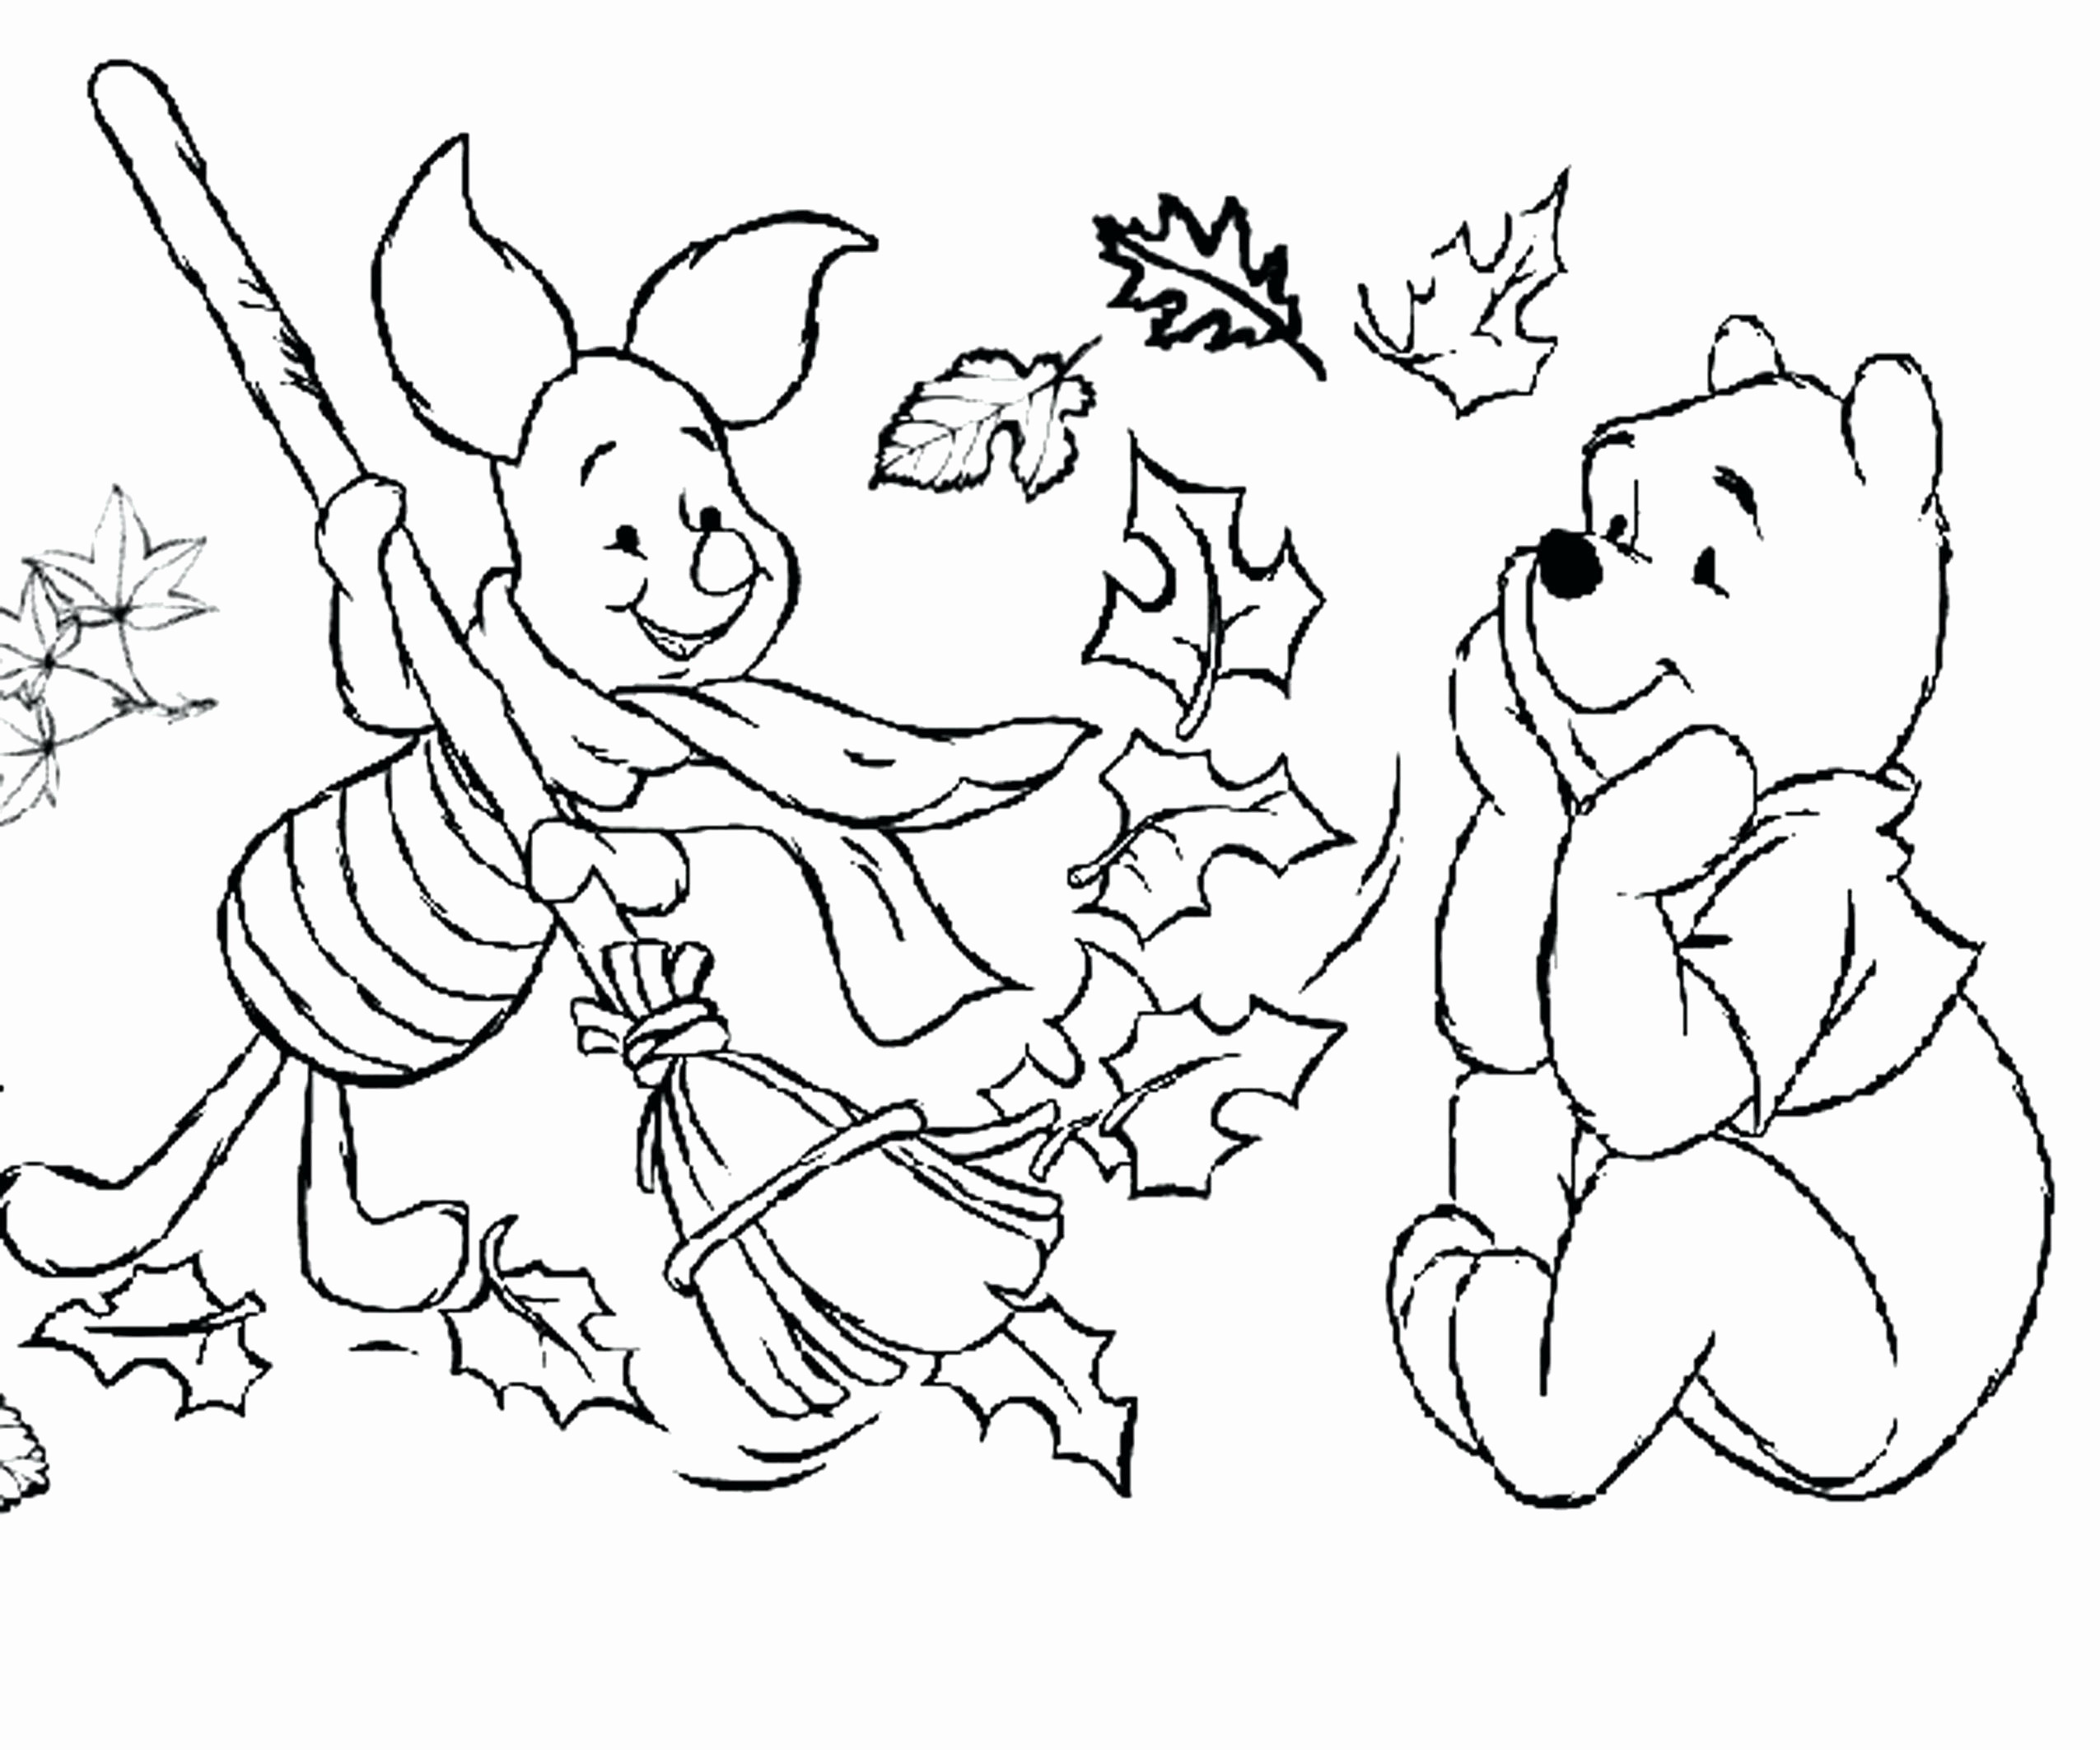 Monkey Coloring Pages Free Printable  Printable 20g - Free For kids